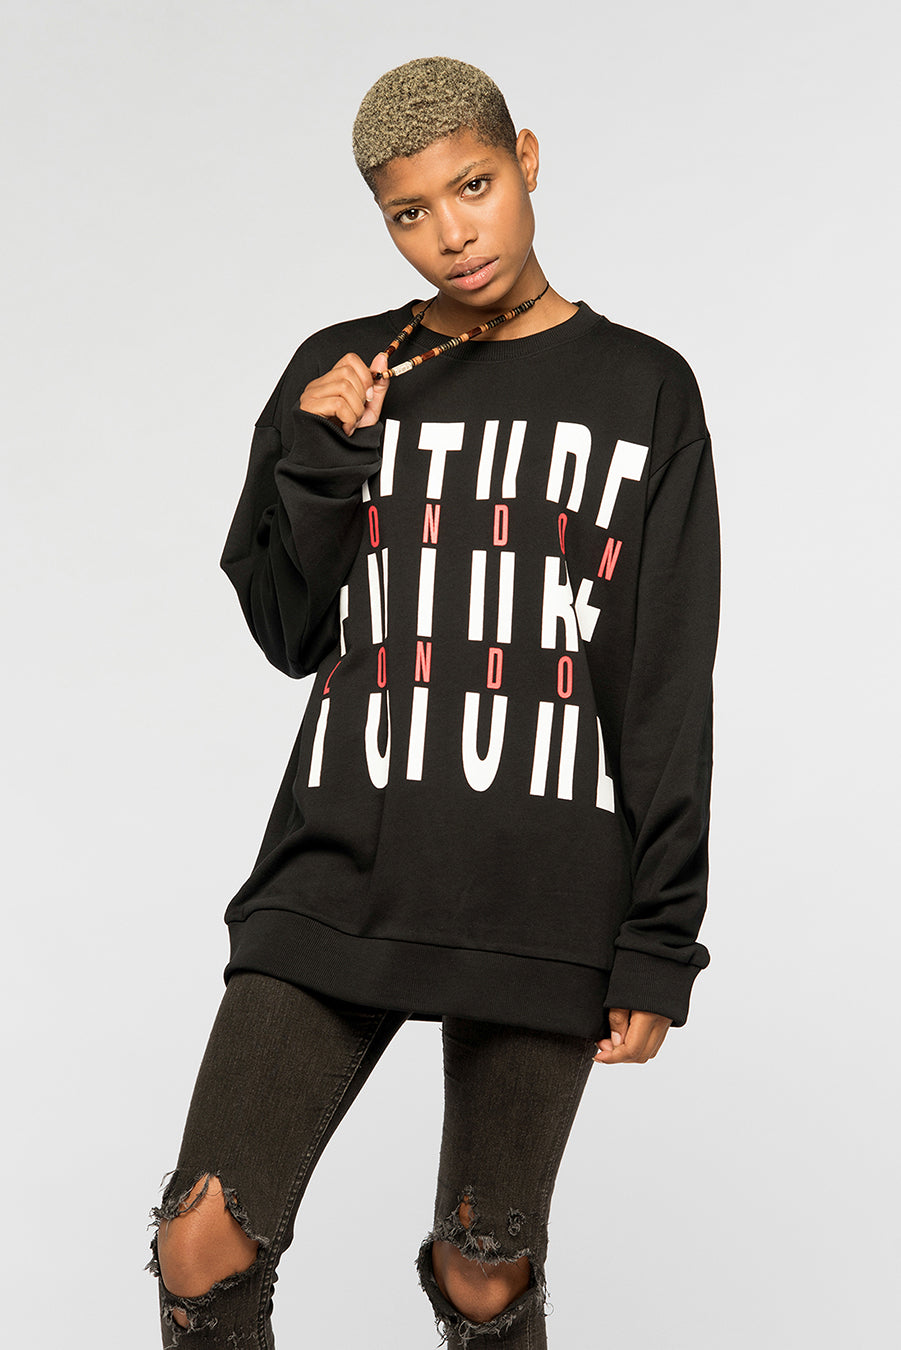 new_future_london_fracture_logo_sweatshirt_black_-1.jpg